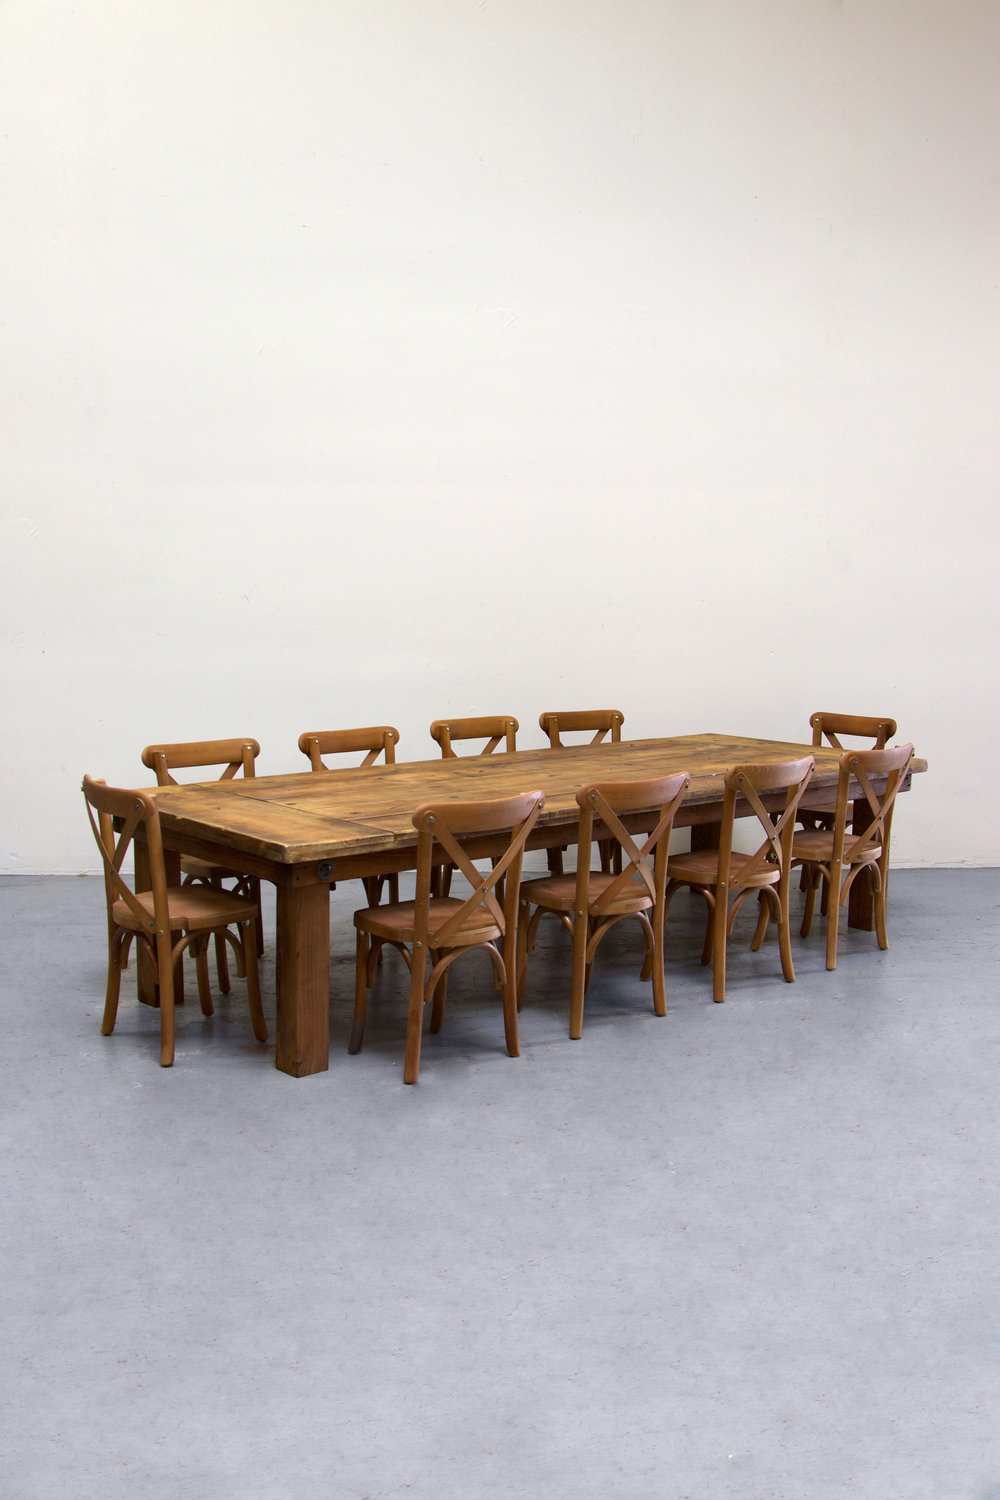 $140 1 Kids Honey Brown Farm Table w/ 10 Cross-Back Chairs